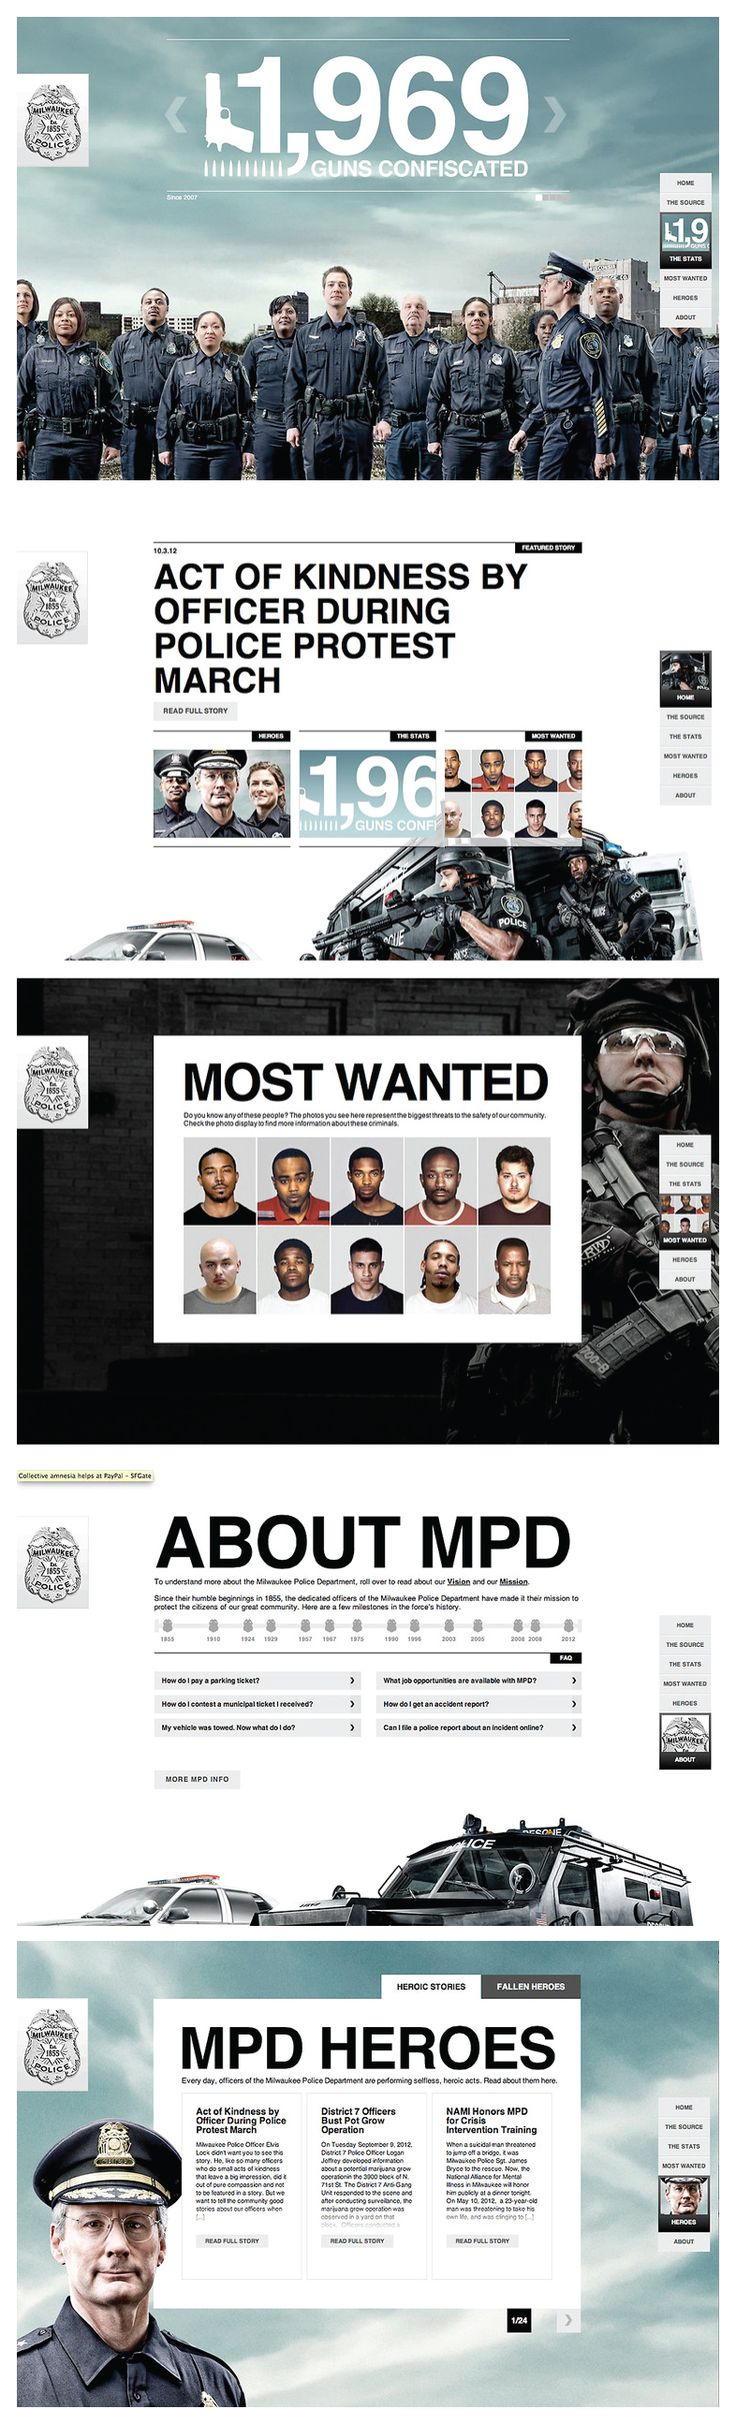 Milwaukee Police Department - rebranding | #webdesign #it #web #design #layout #userinterface #website #webdesign <<< repinned by an #advertising #agency from #Hamburg / #Germany - www.BlickeDeeler.de | Follow us on www.facebook.com/BlickeDeeler